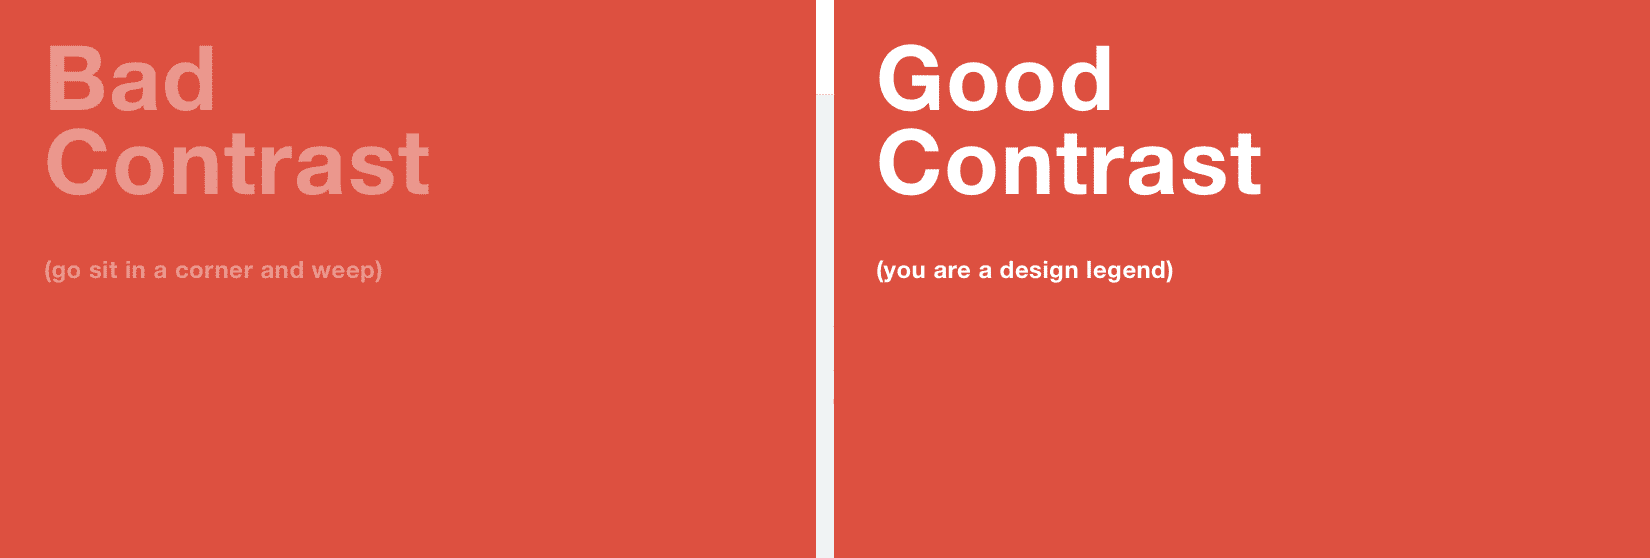 Contrast good and bad